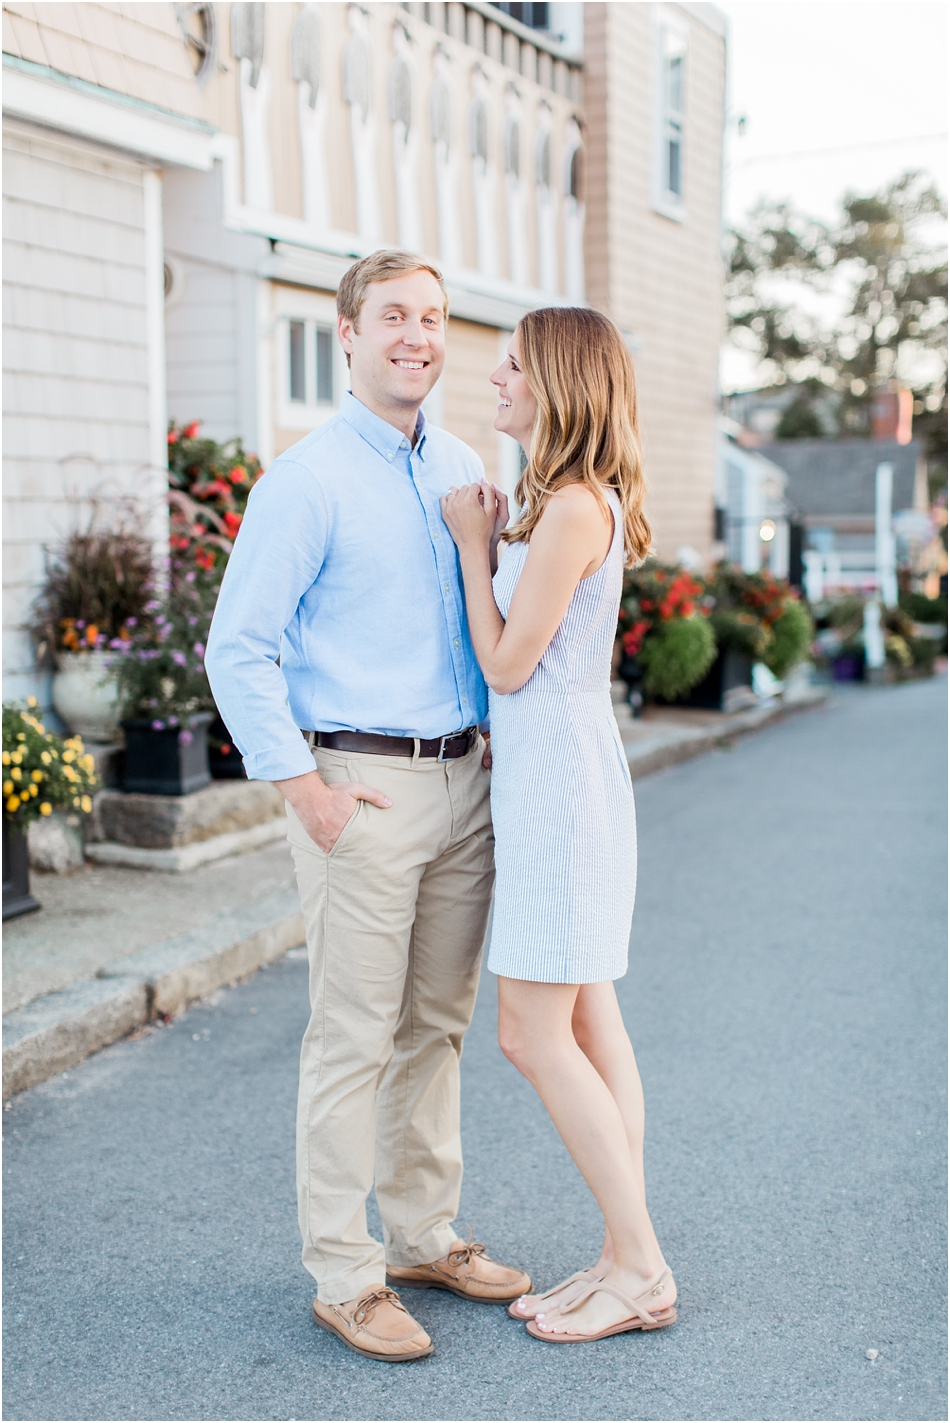 rockport_ma_engagement_kelly_zach_cape_cod_boston_new_england_wedding_photographer_Meredith_Jane_Photography_photo_2335.jpg